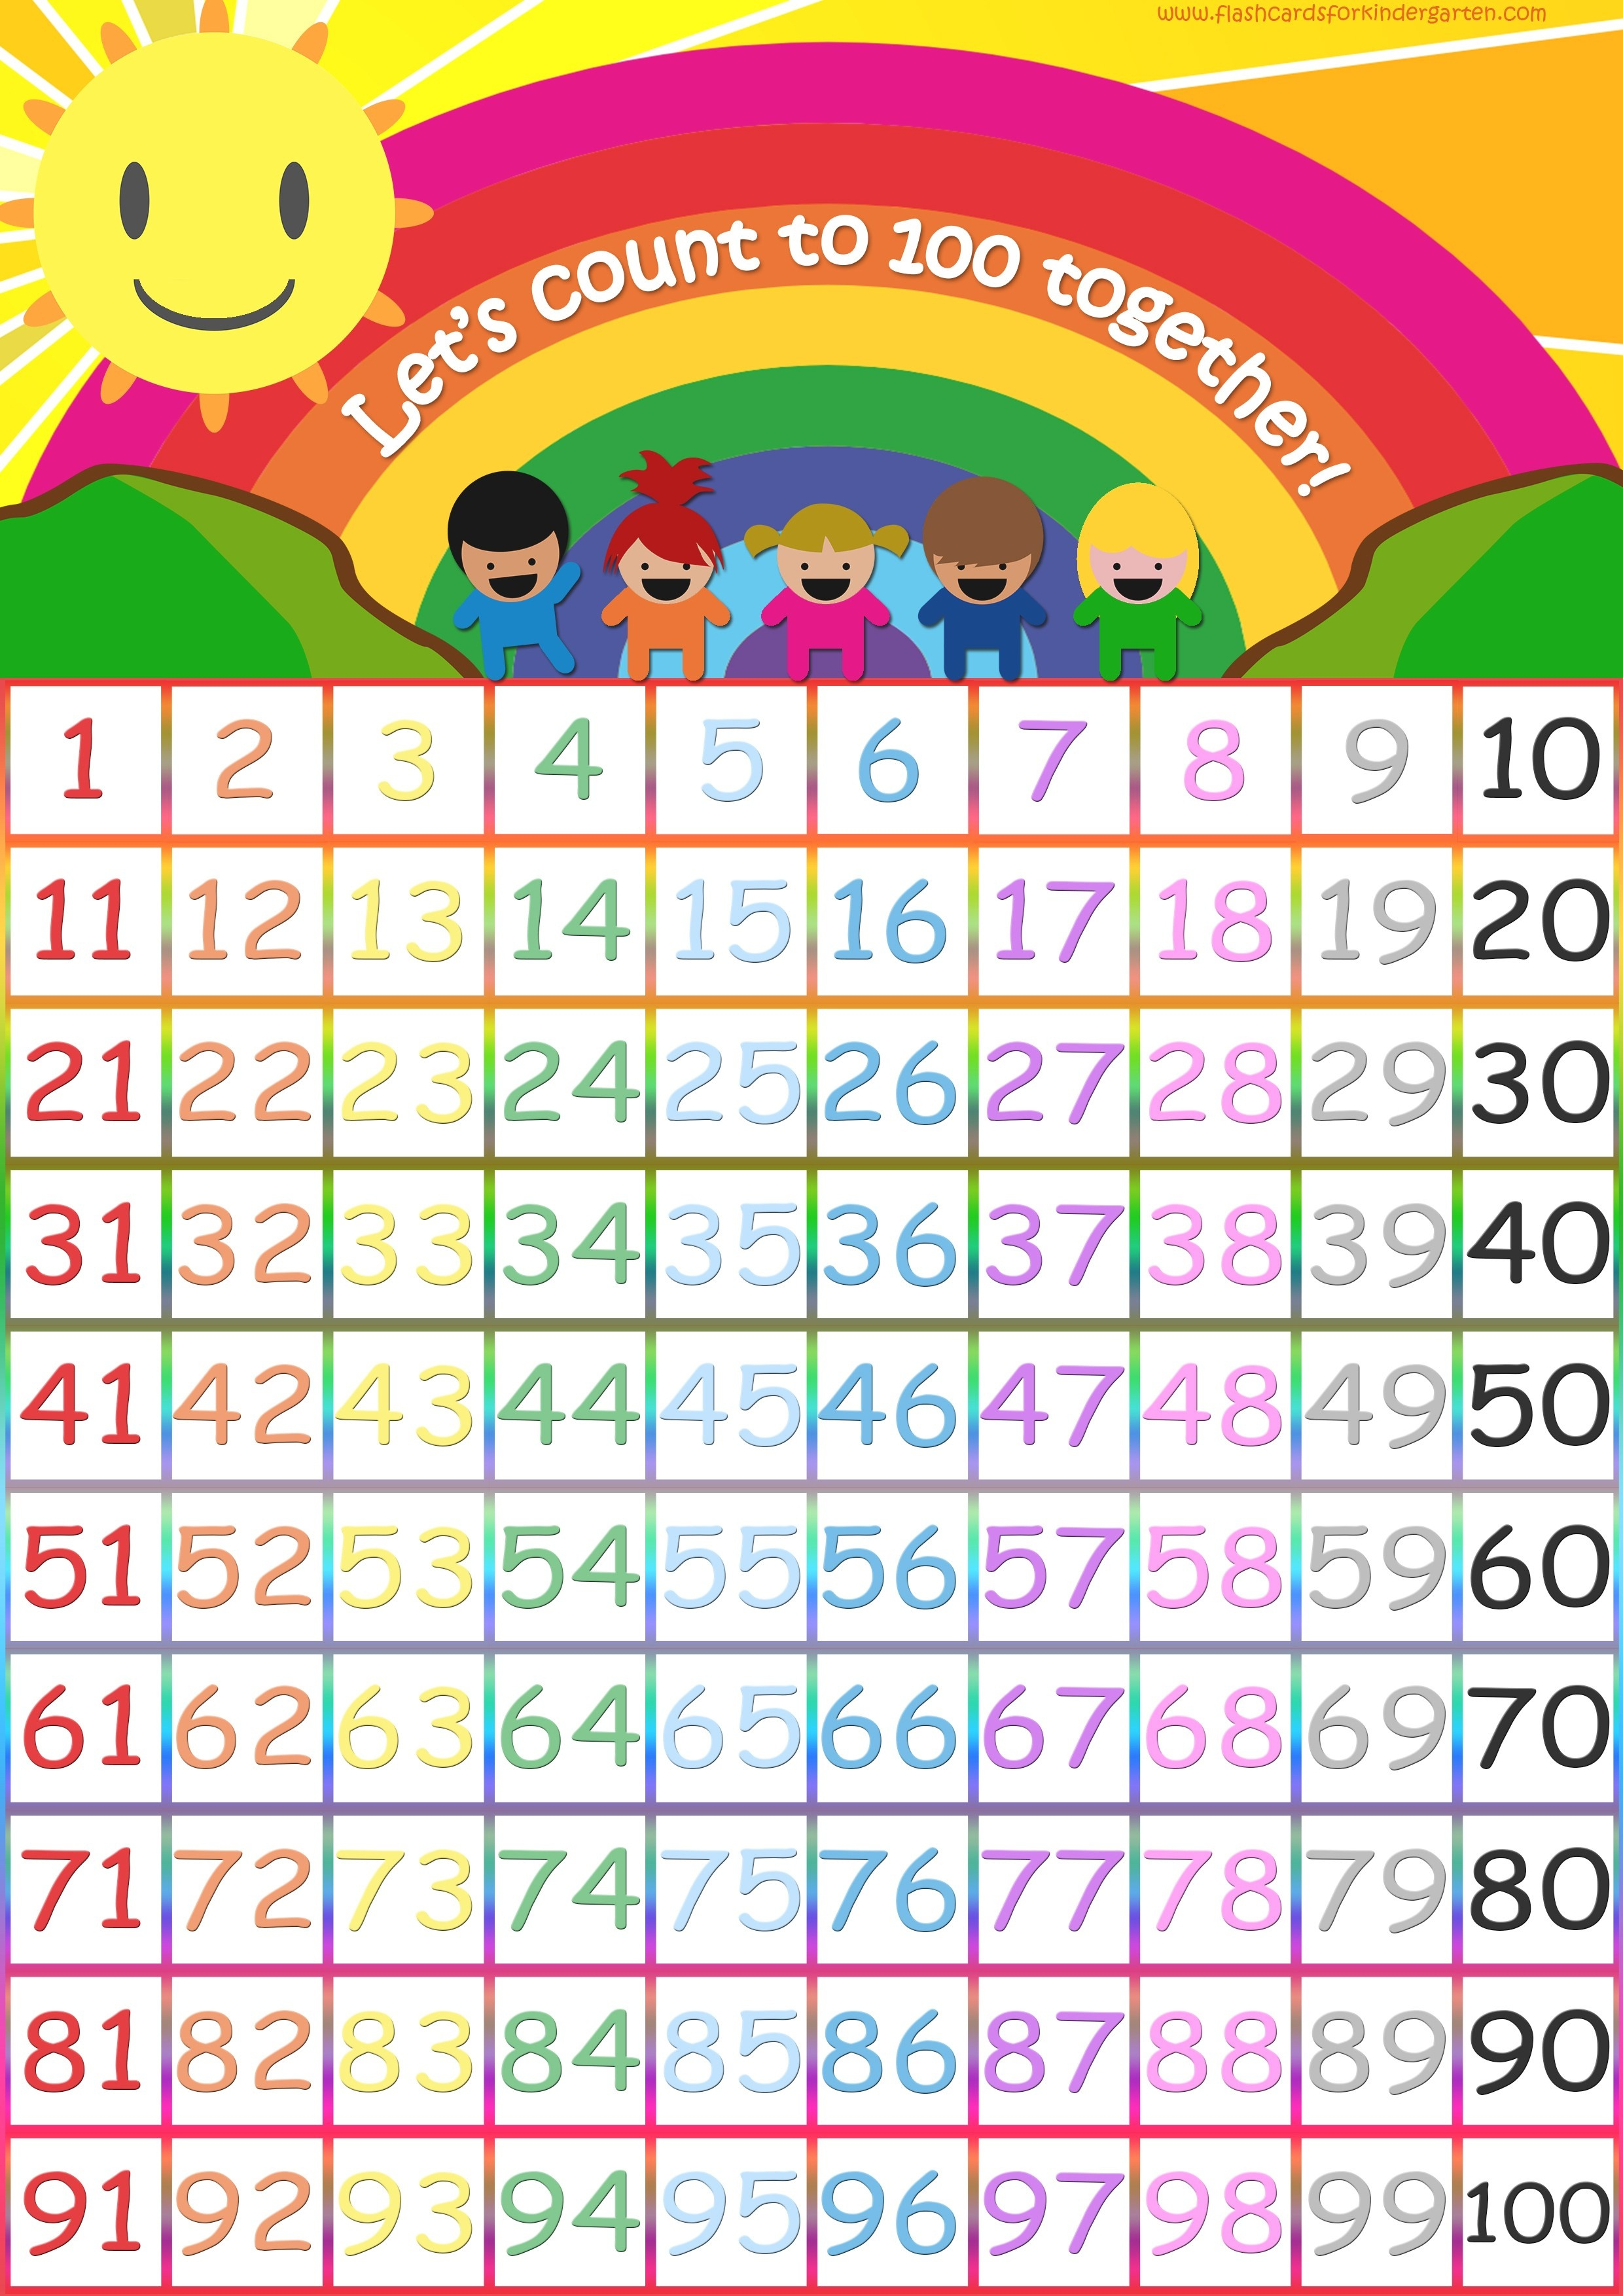 Number Flashcards - Teach Numbers - Free Flashcards & Posters! - Free Printable Number Flashcards 1 30